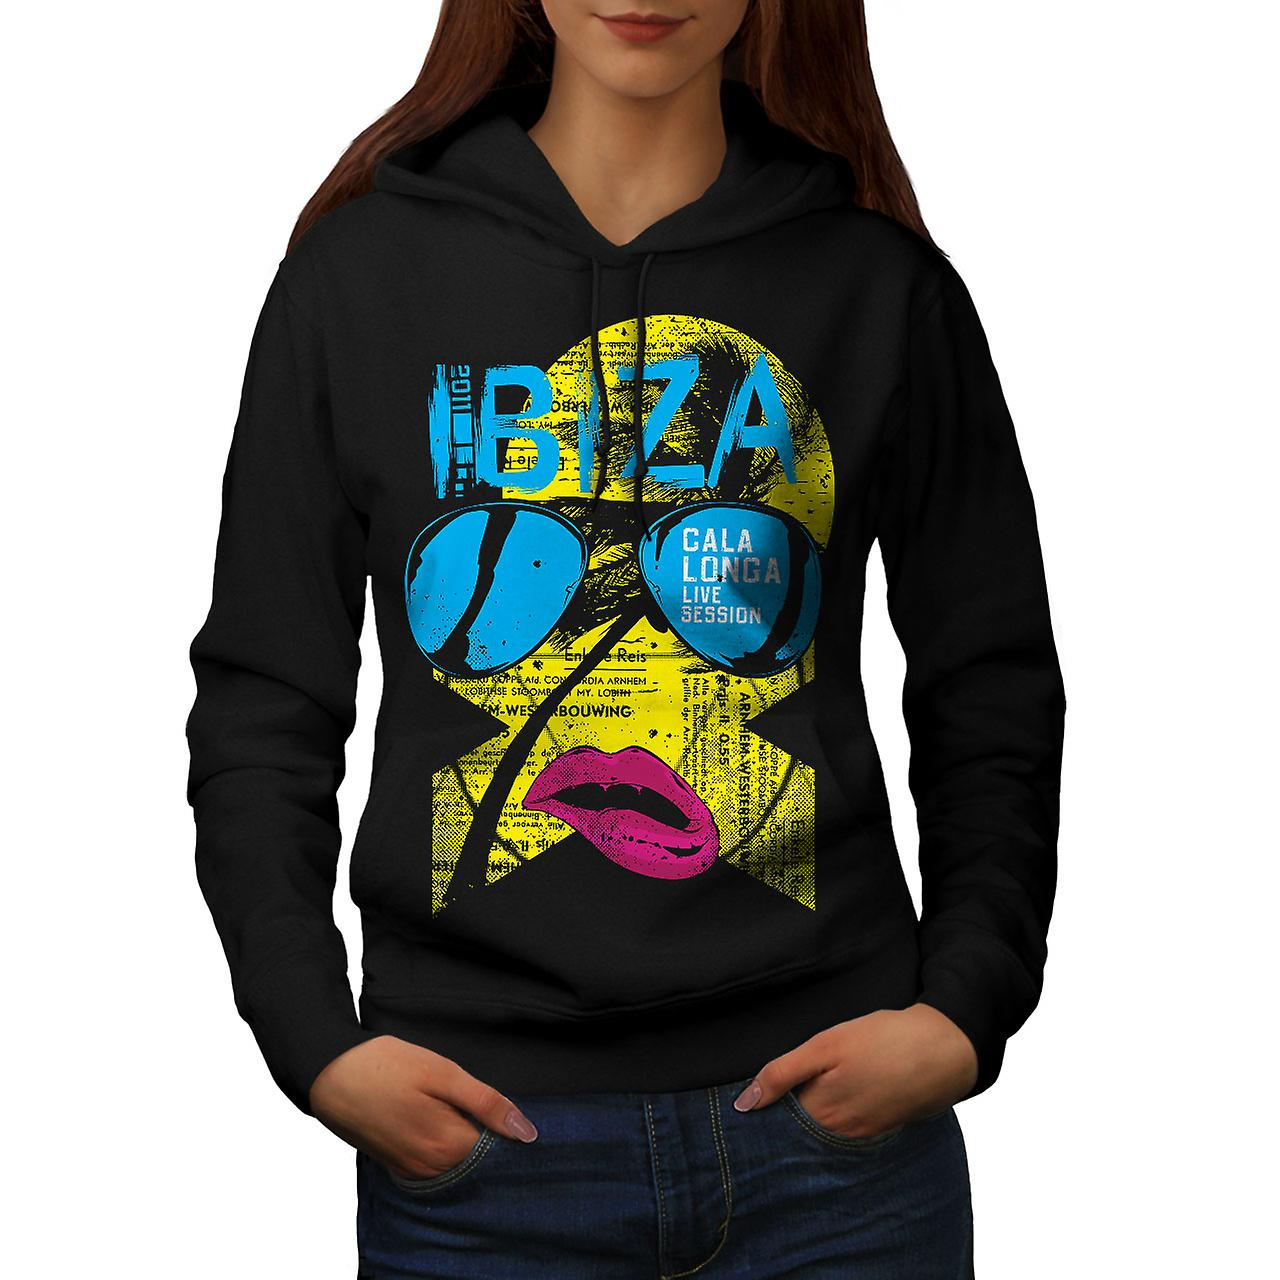 Ibiza Gala Longa Holiday Women Black Hoodie | Wellcoda